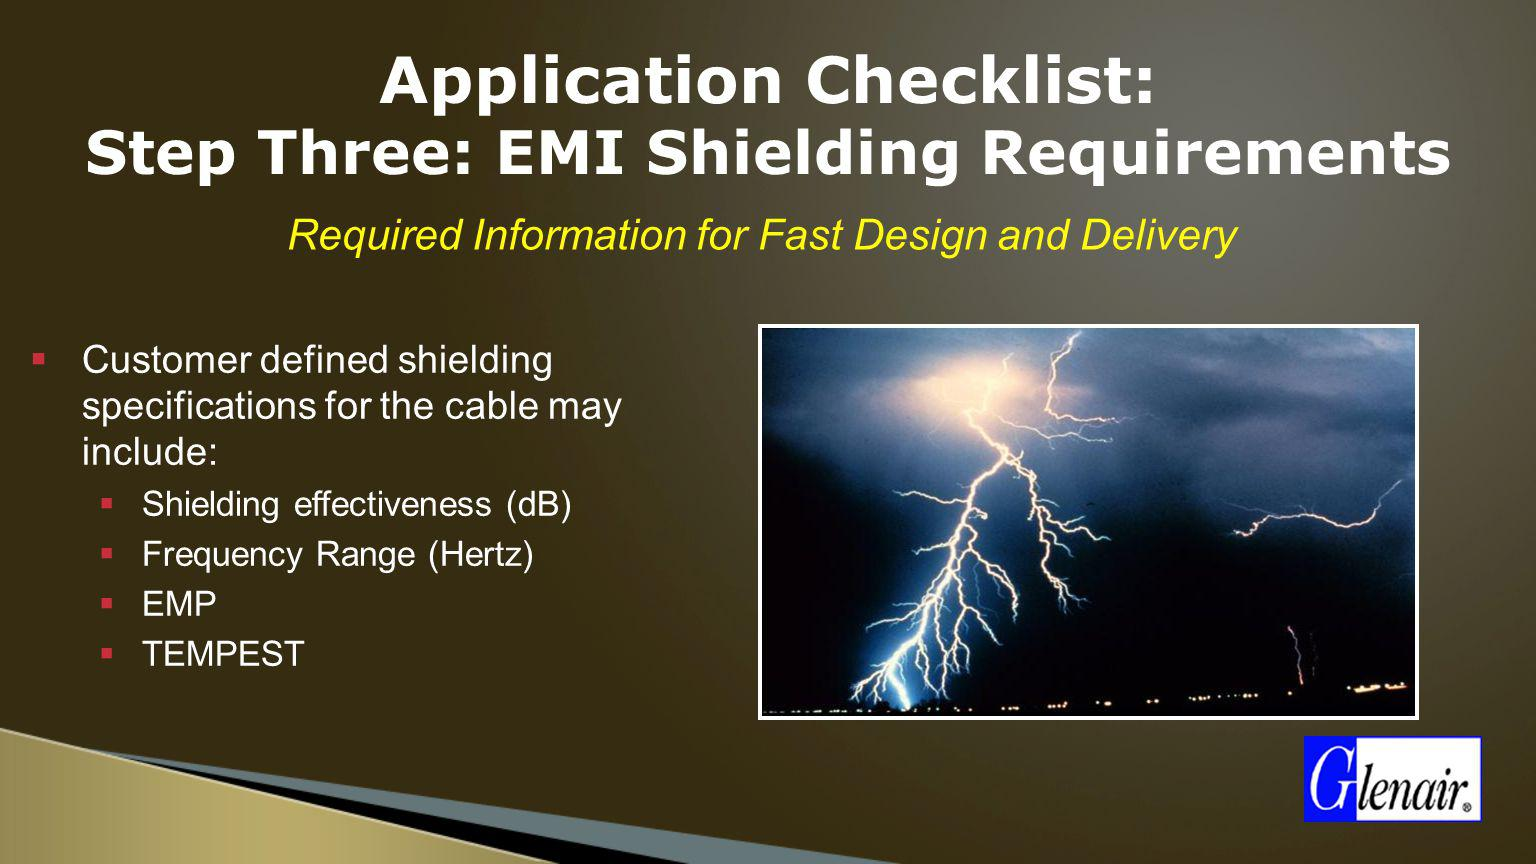 Application Checklist: Step Three: EMI Shielding Requirements